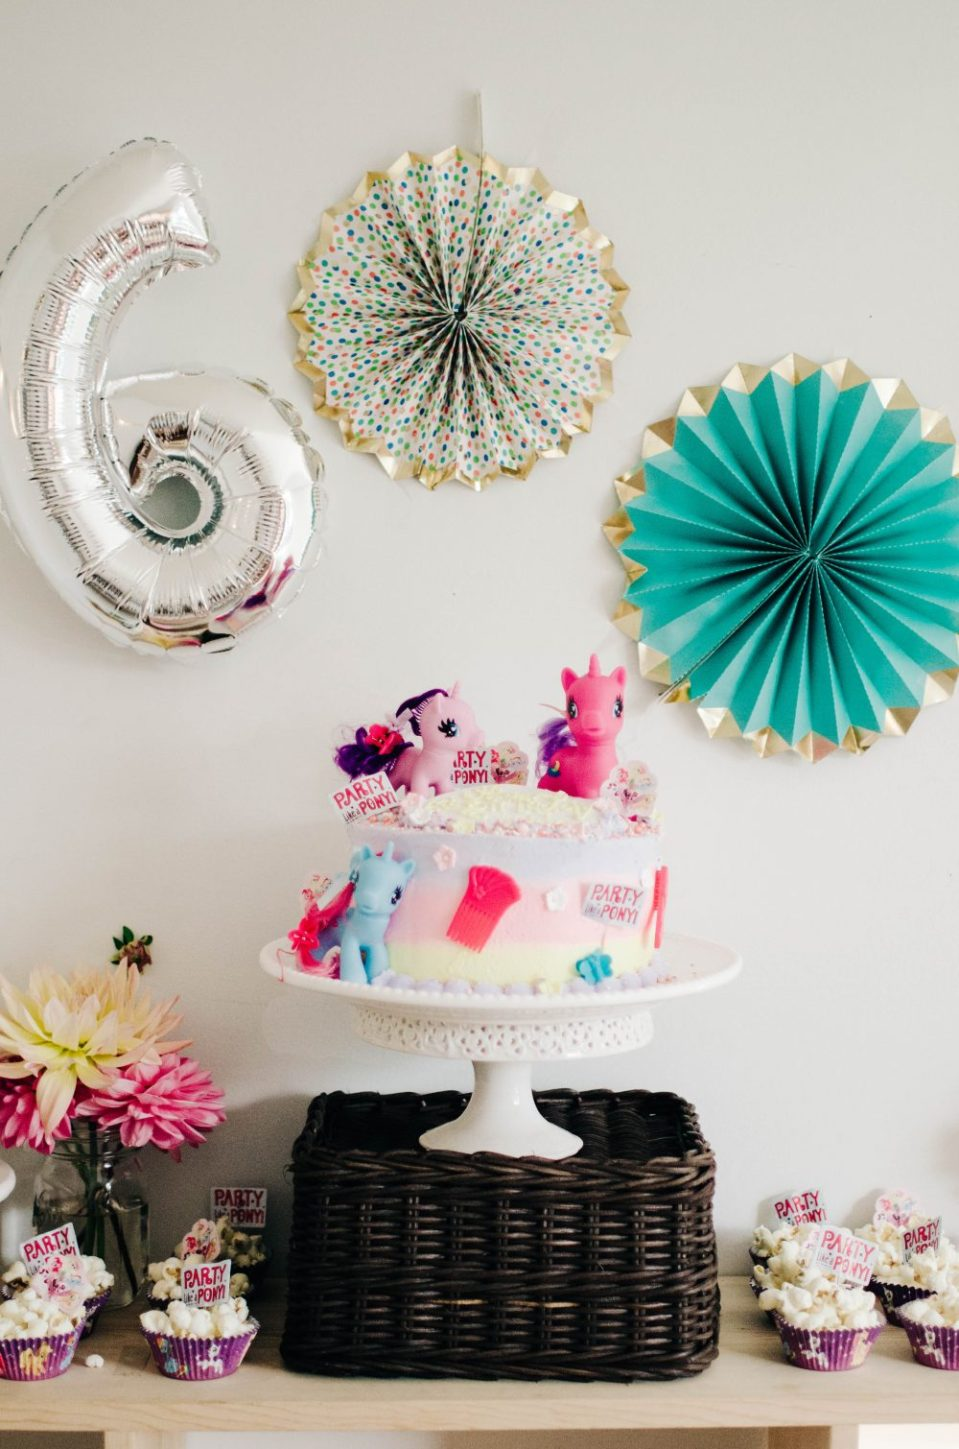 My Little Pony Birthday Party Decor